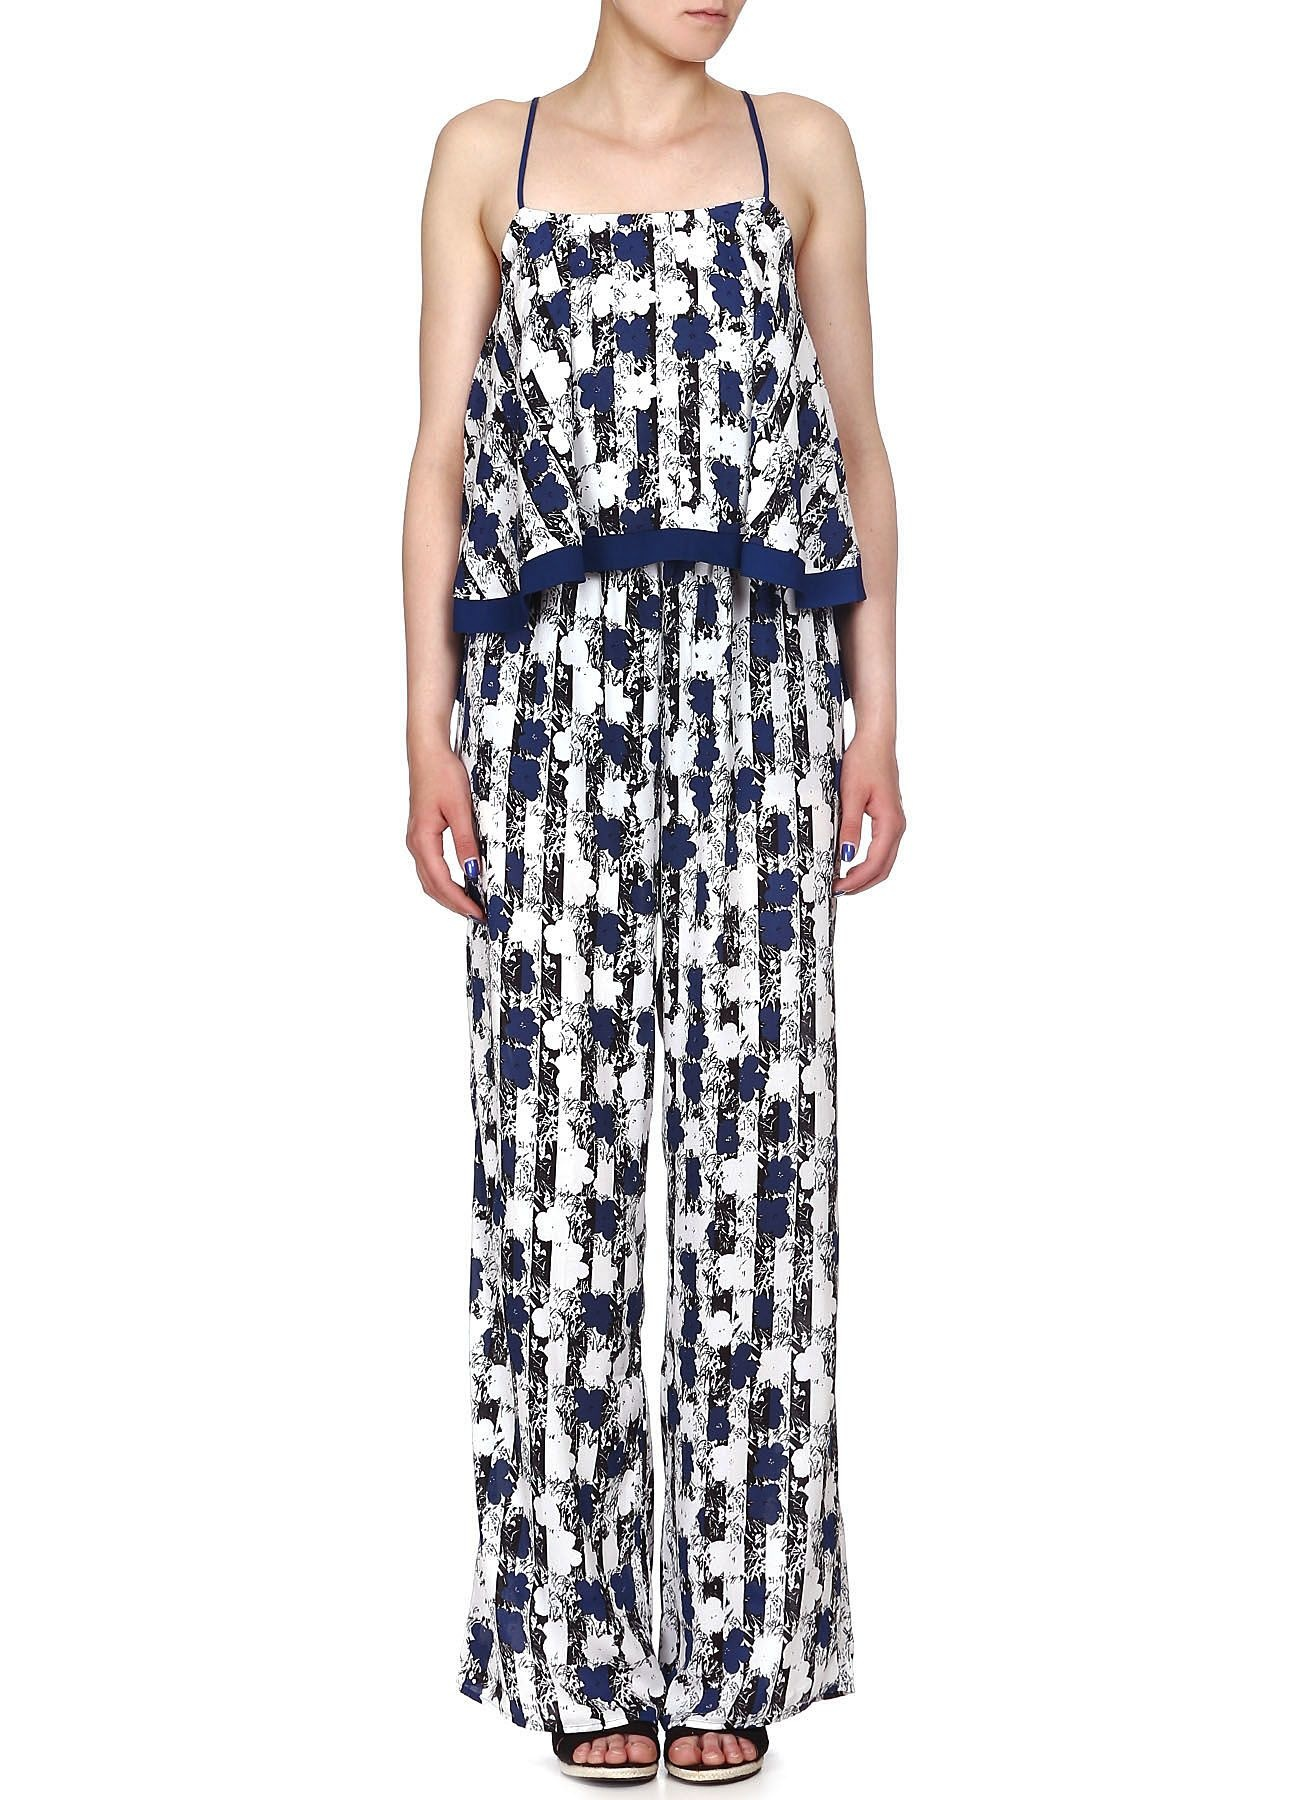 Pepe Jeans by Andy Warhol Jumpsuit,blauw/wit